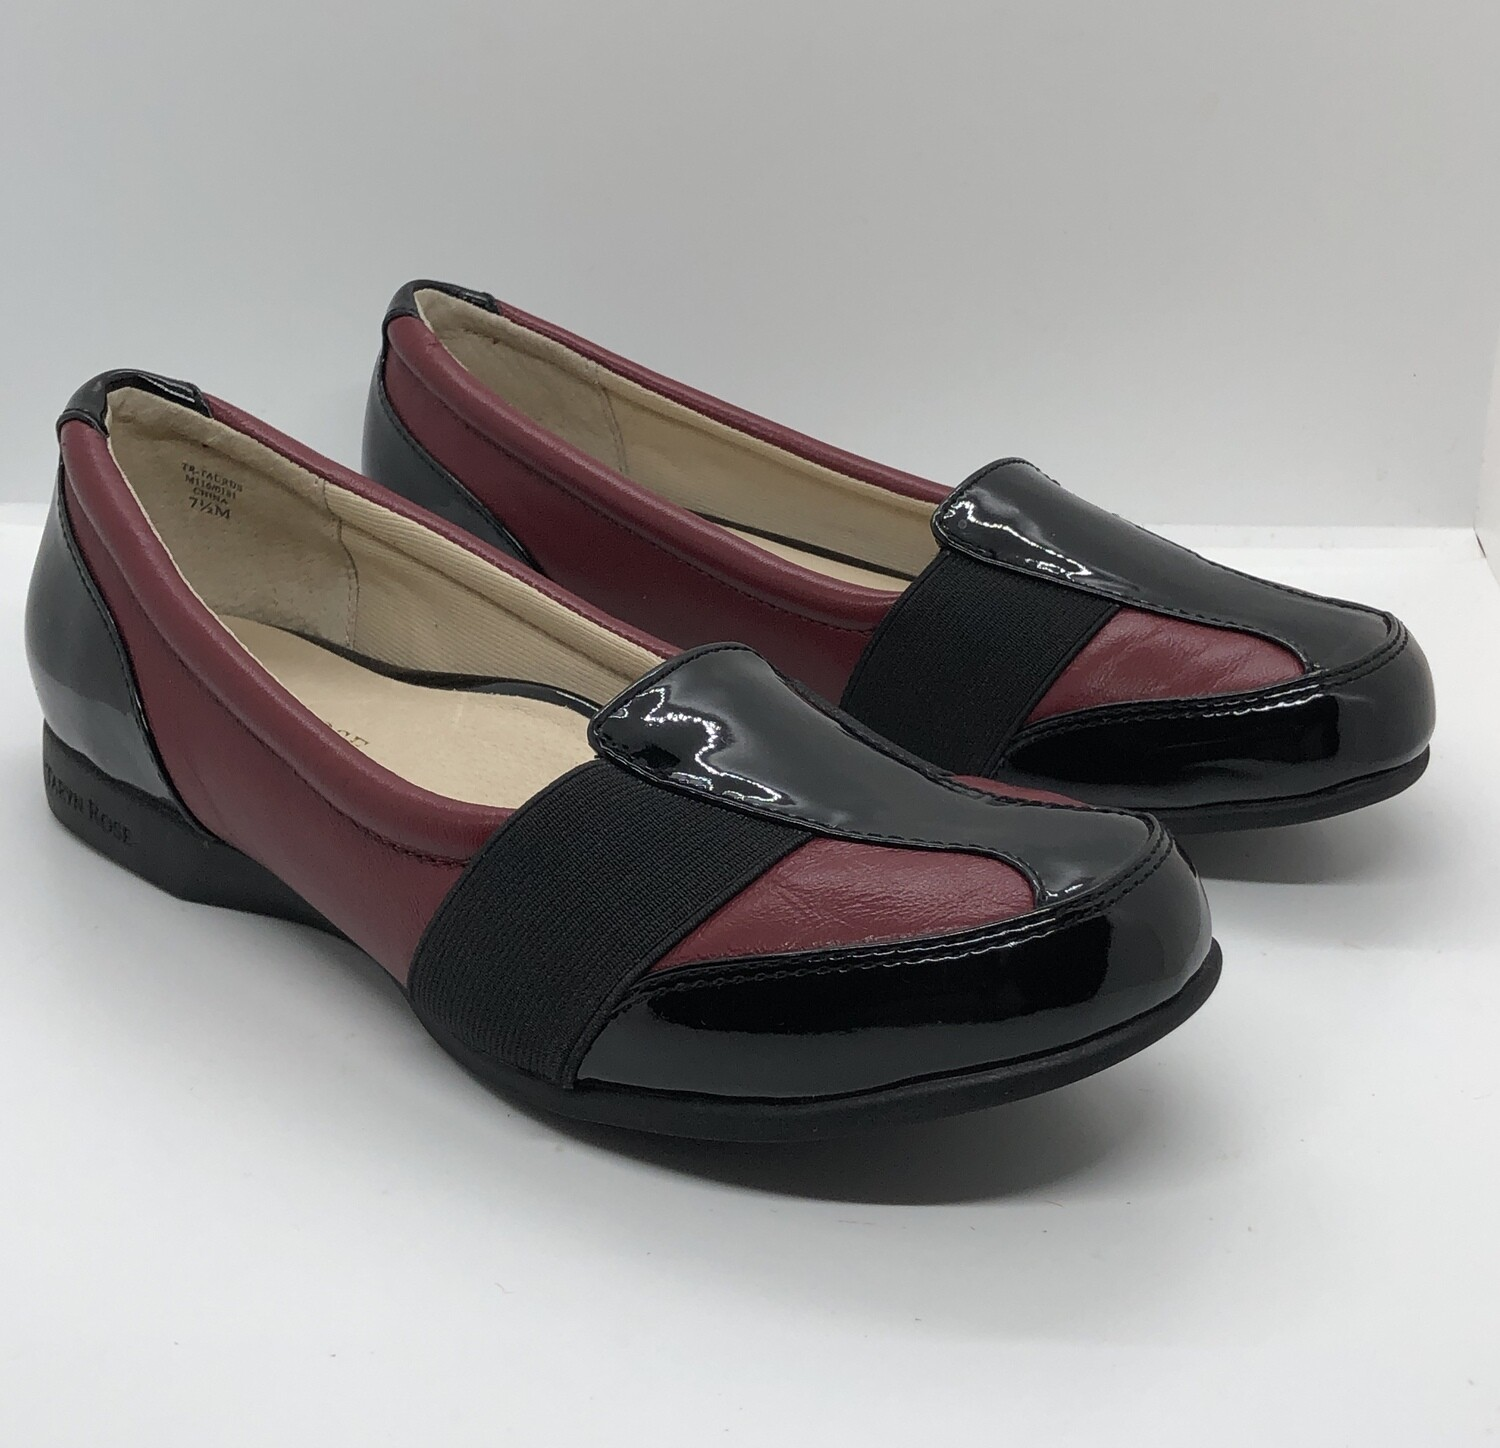 TARYN ROSE Traveler Crimson & Black Patent Leather Loafers Shoes size 7 1/2